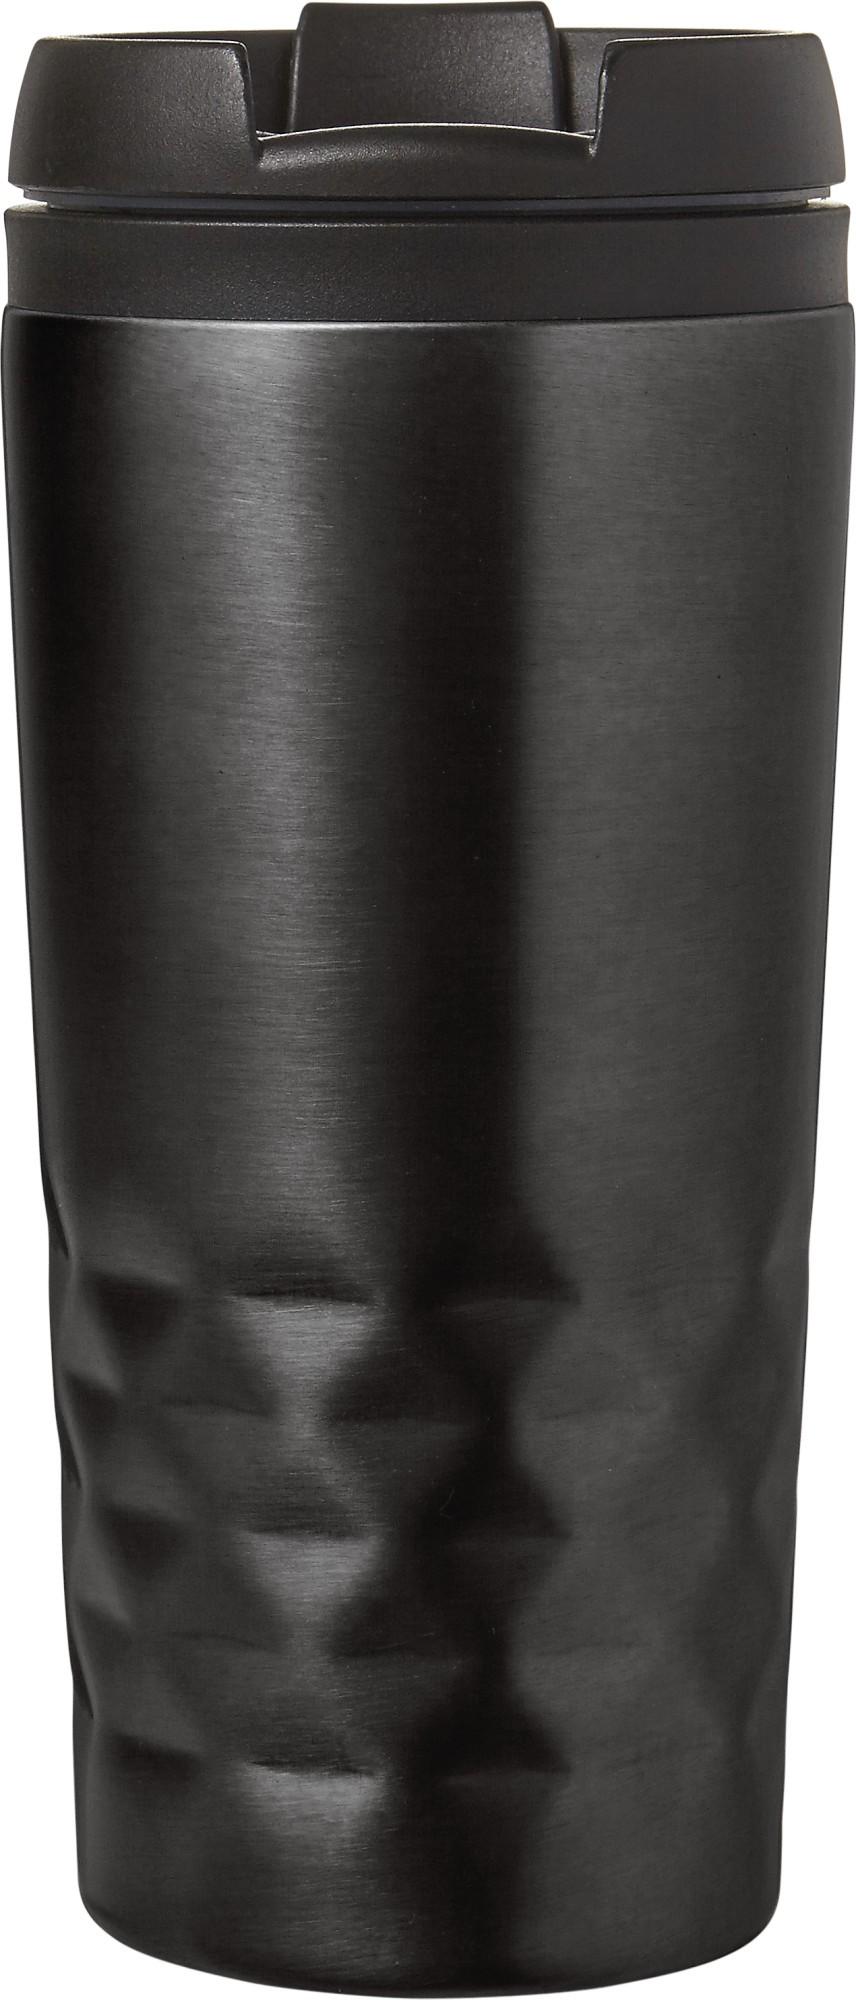 Stainless Steel Travel Mug 300ml Black Thermos Reklamajandek Hu Ltd